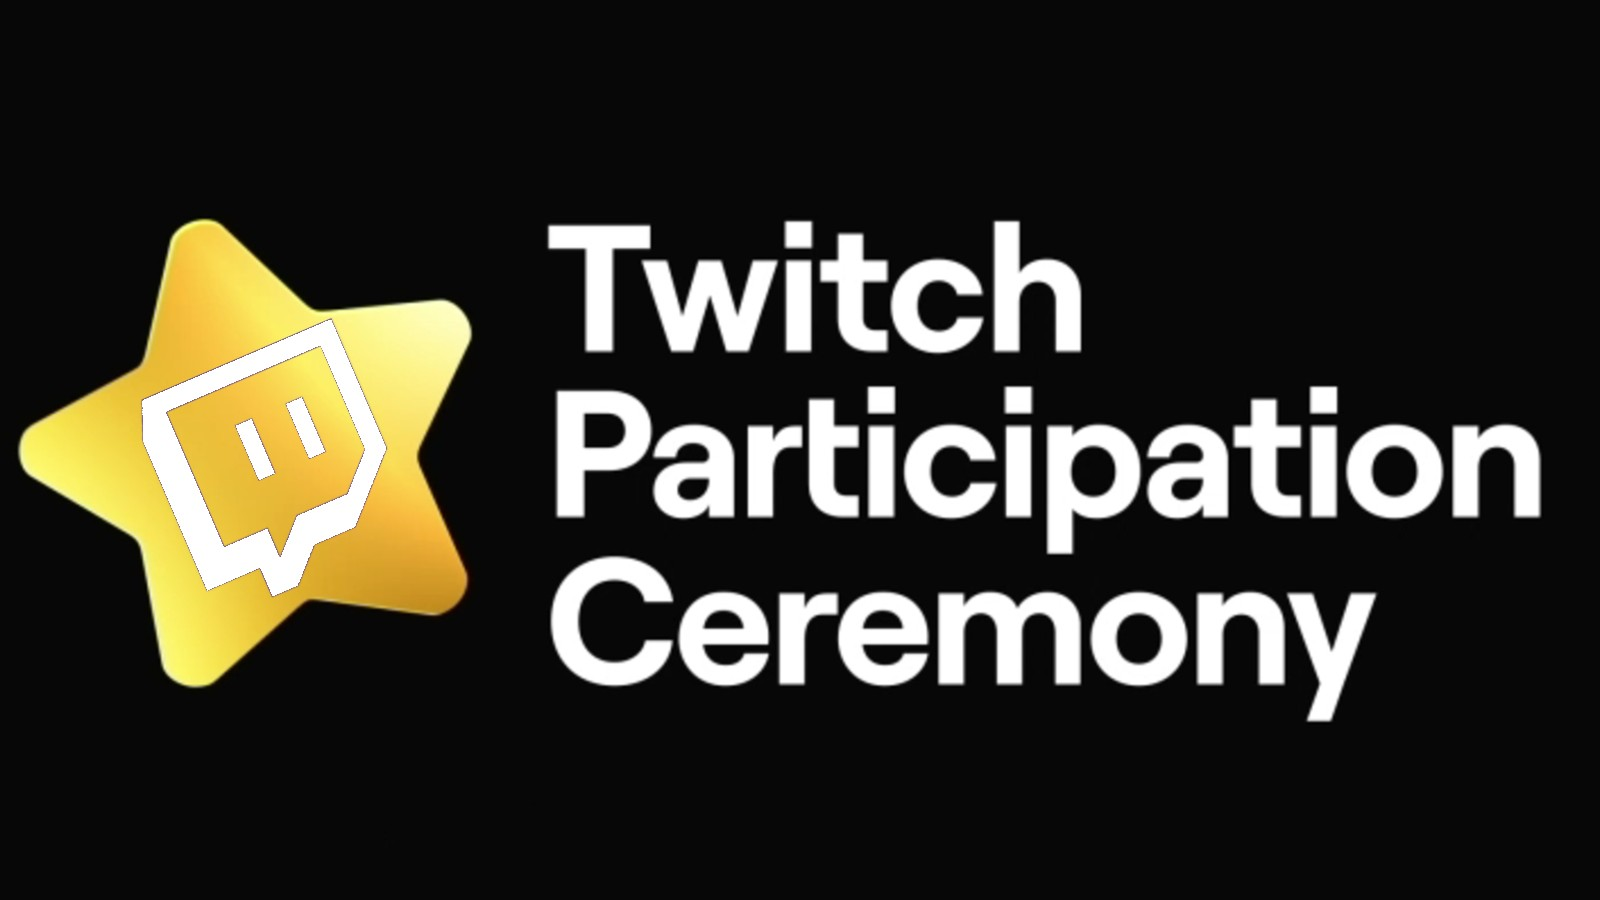 twitch participation ceremony featured image